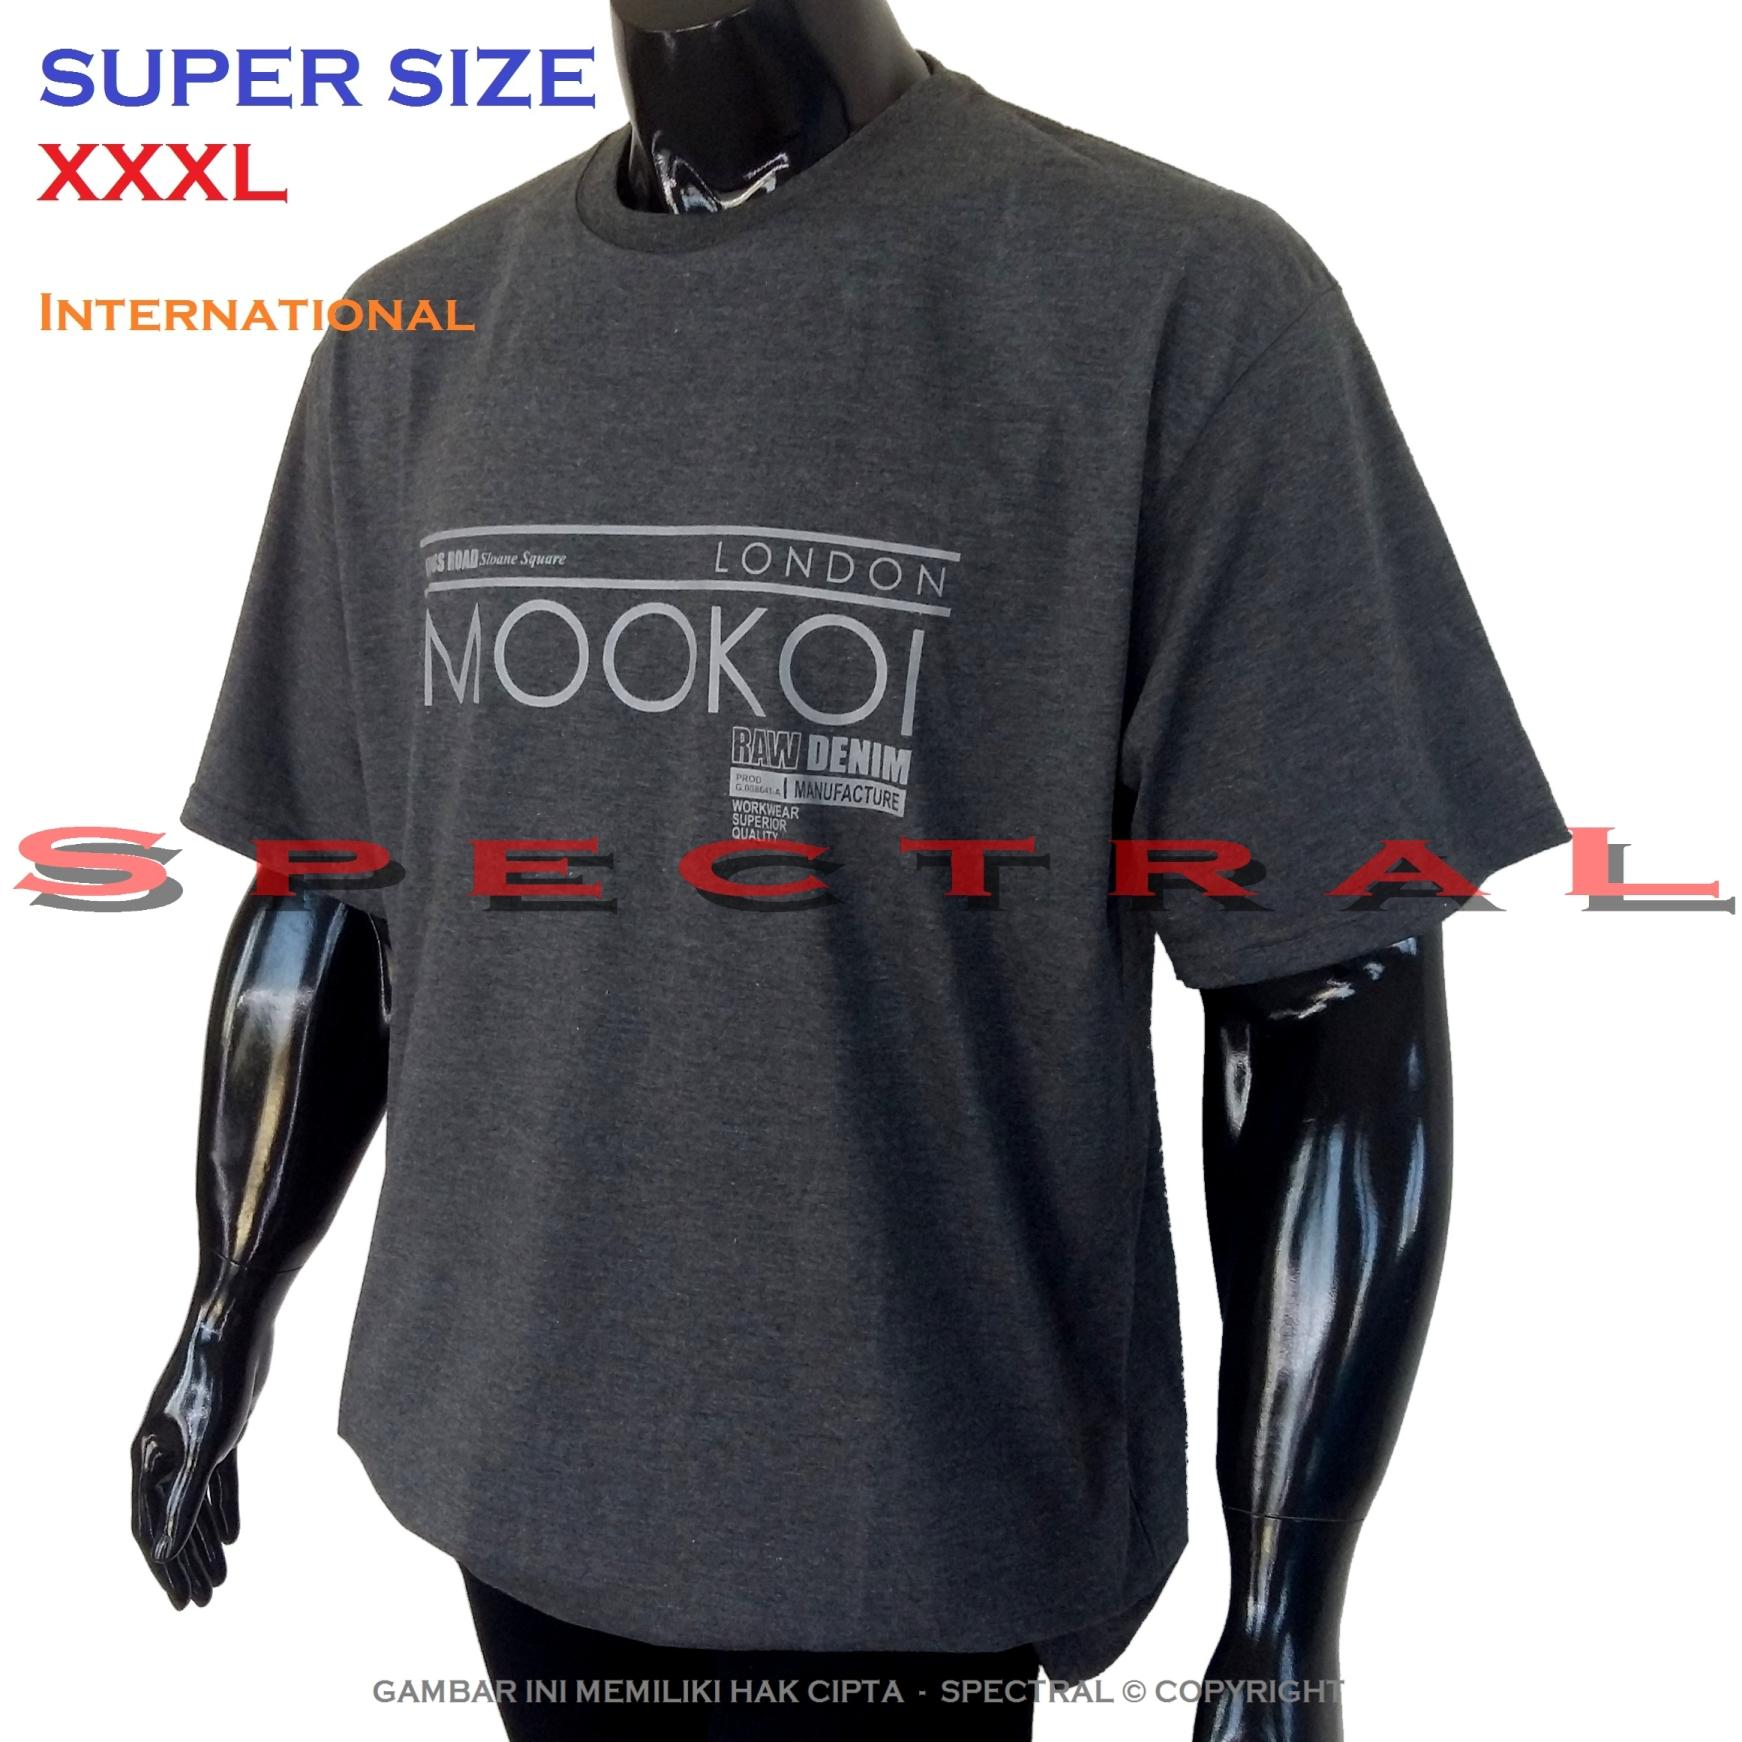 Spectral – SUPER BIG SIZE XXXL INTERNATIONAL 100{55e037da9a70d2f692182bf73e9ad7c46940d20c7297ef2687c837f7bdb7b002} Soft Cotton Combed Kaos Distro Jumbo BIGSIZE T-Shirt Fashion Ukuran Besar Polos Celana Atasan Pria Wanita Katun Bapak Orang Tua Gemuk Gendut Lengan Simple Sport Casual 3L 3XL Baju Cowo Cewe Pakaian Terbaru